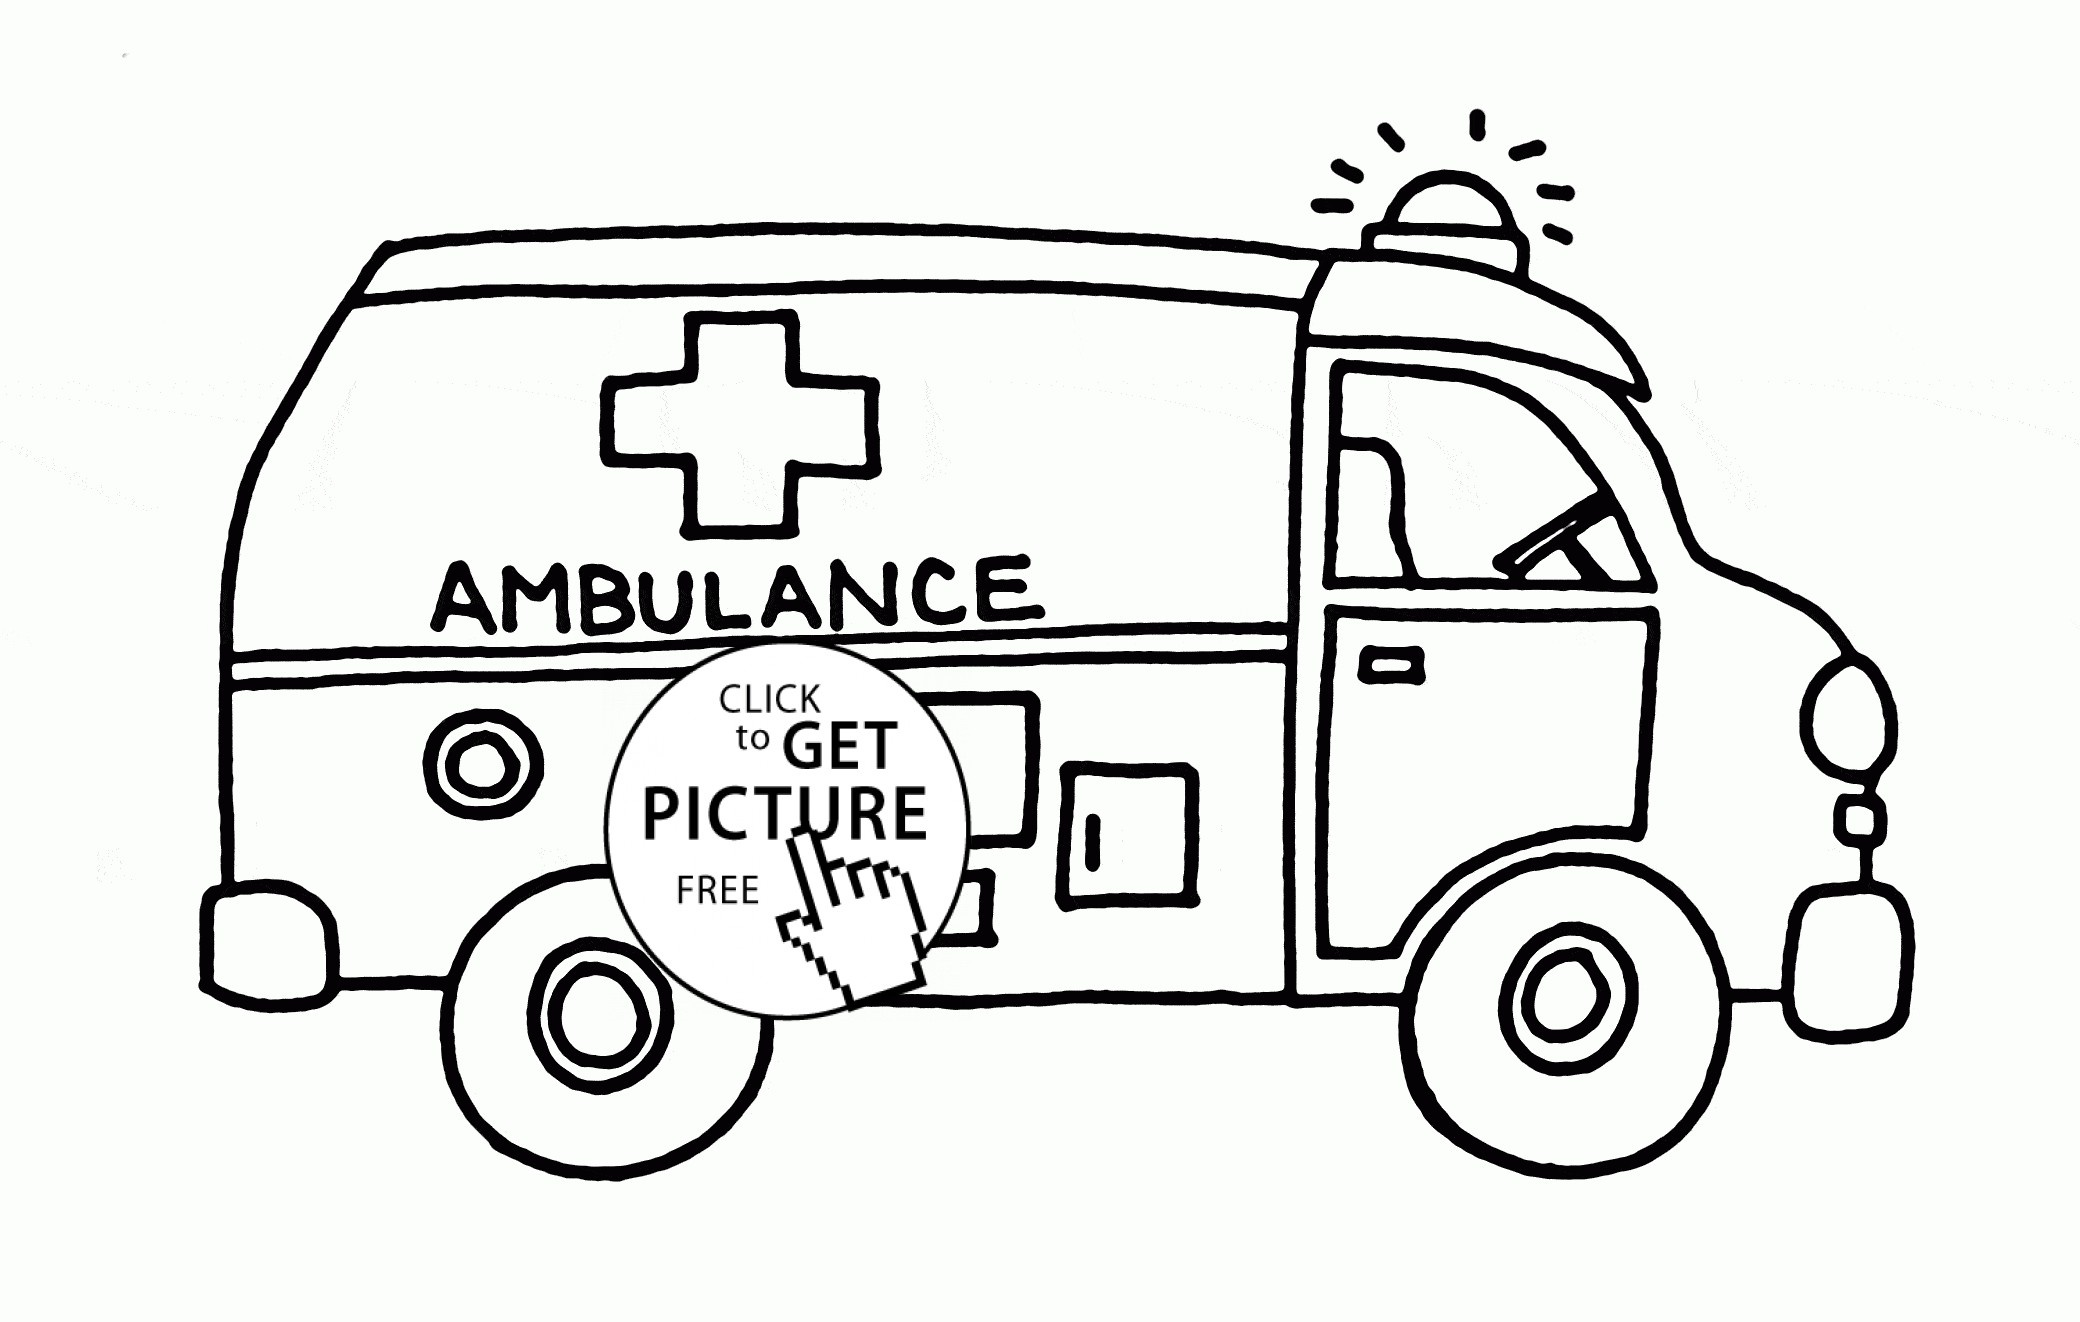 2080x1322 Elegant Lego Ambulance Car Coloring Page For Kids Lovely Ambulance